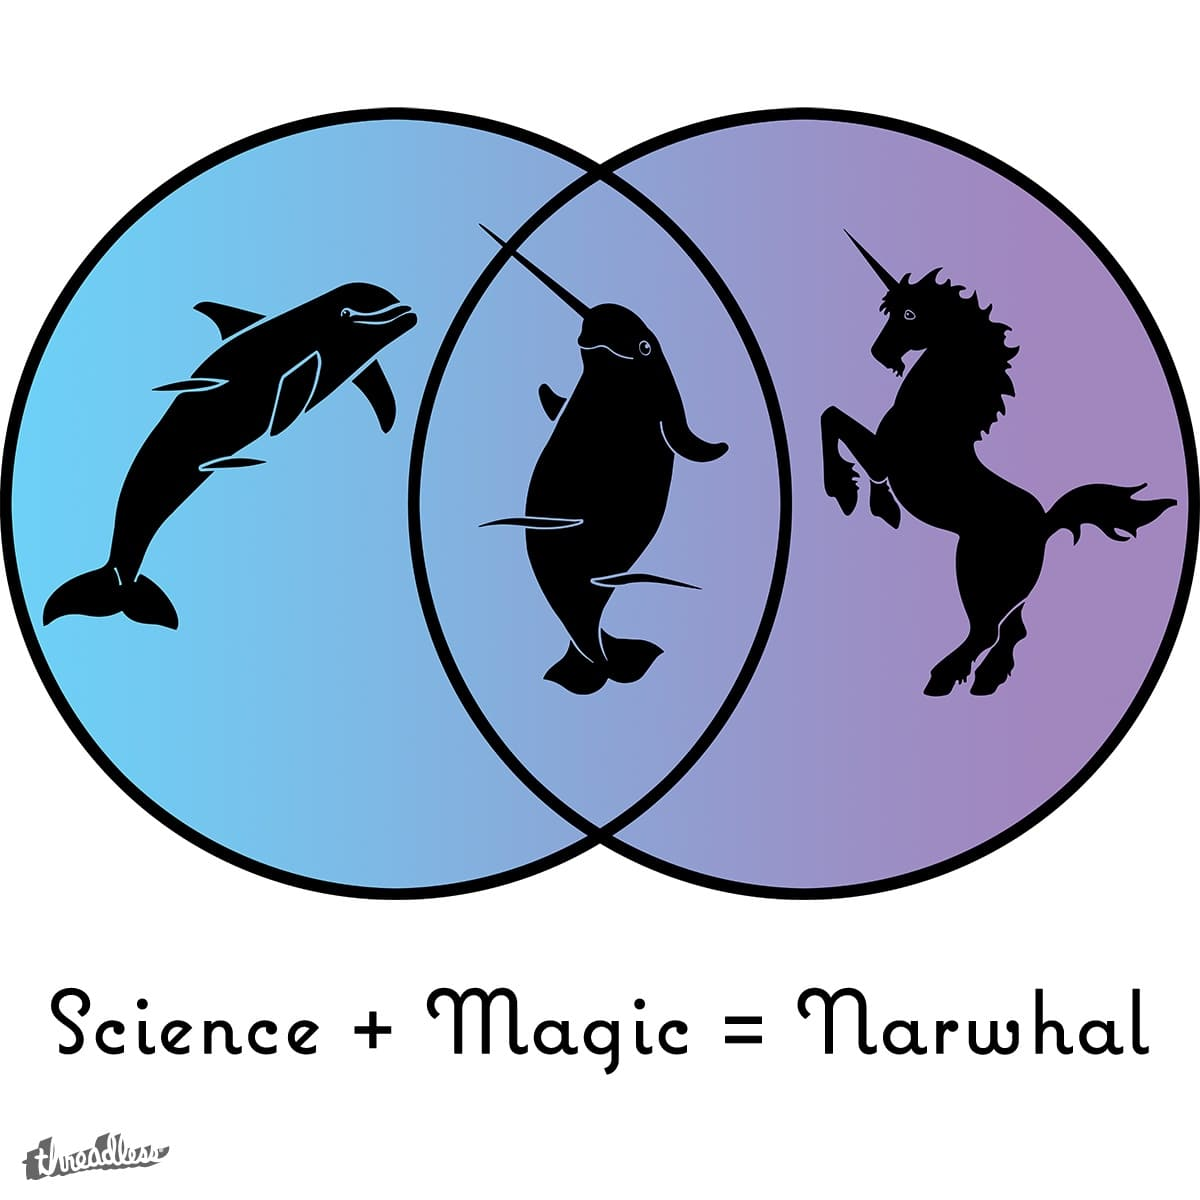 Science + Magic = Narwhal by bgallant69 on Threadless